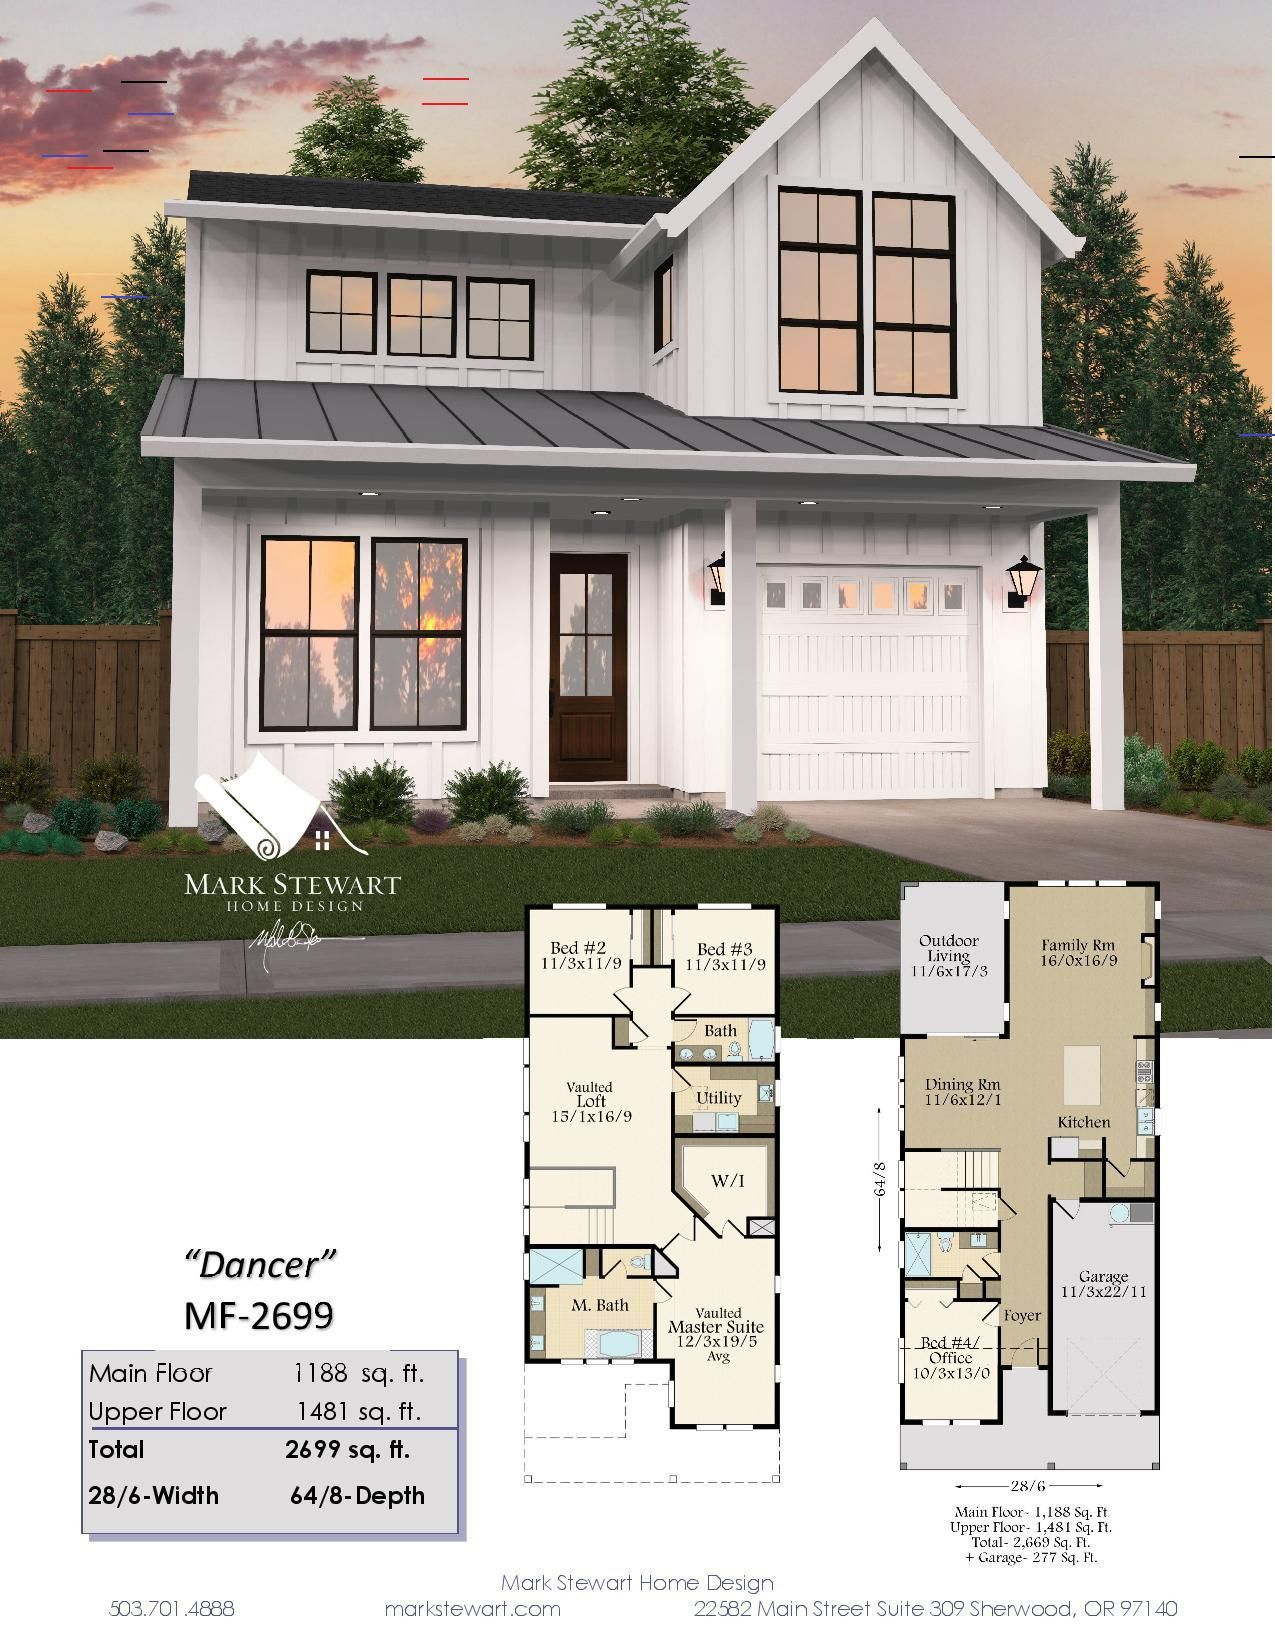 40 Small Modern Farmhouse Plans To Build Your Dream House Still You Don T Need To Be All In To Ca Small Farmhouse Plans Modern Farmhouse Plans Farmhouse Plans